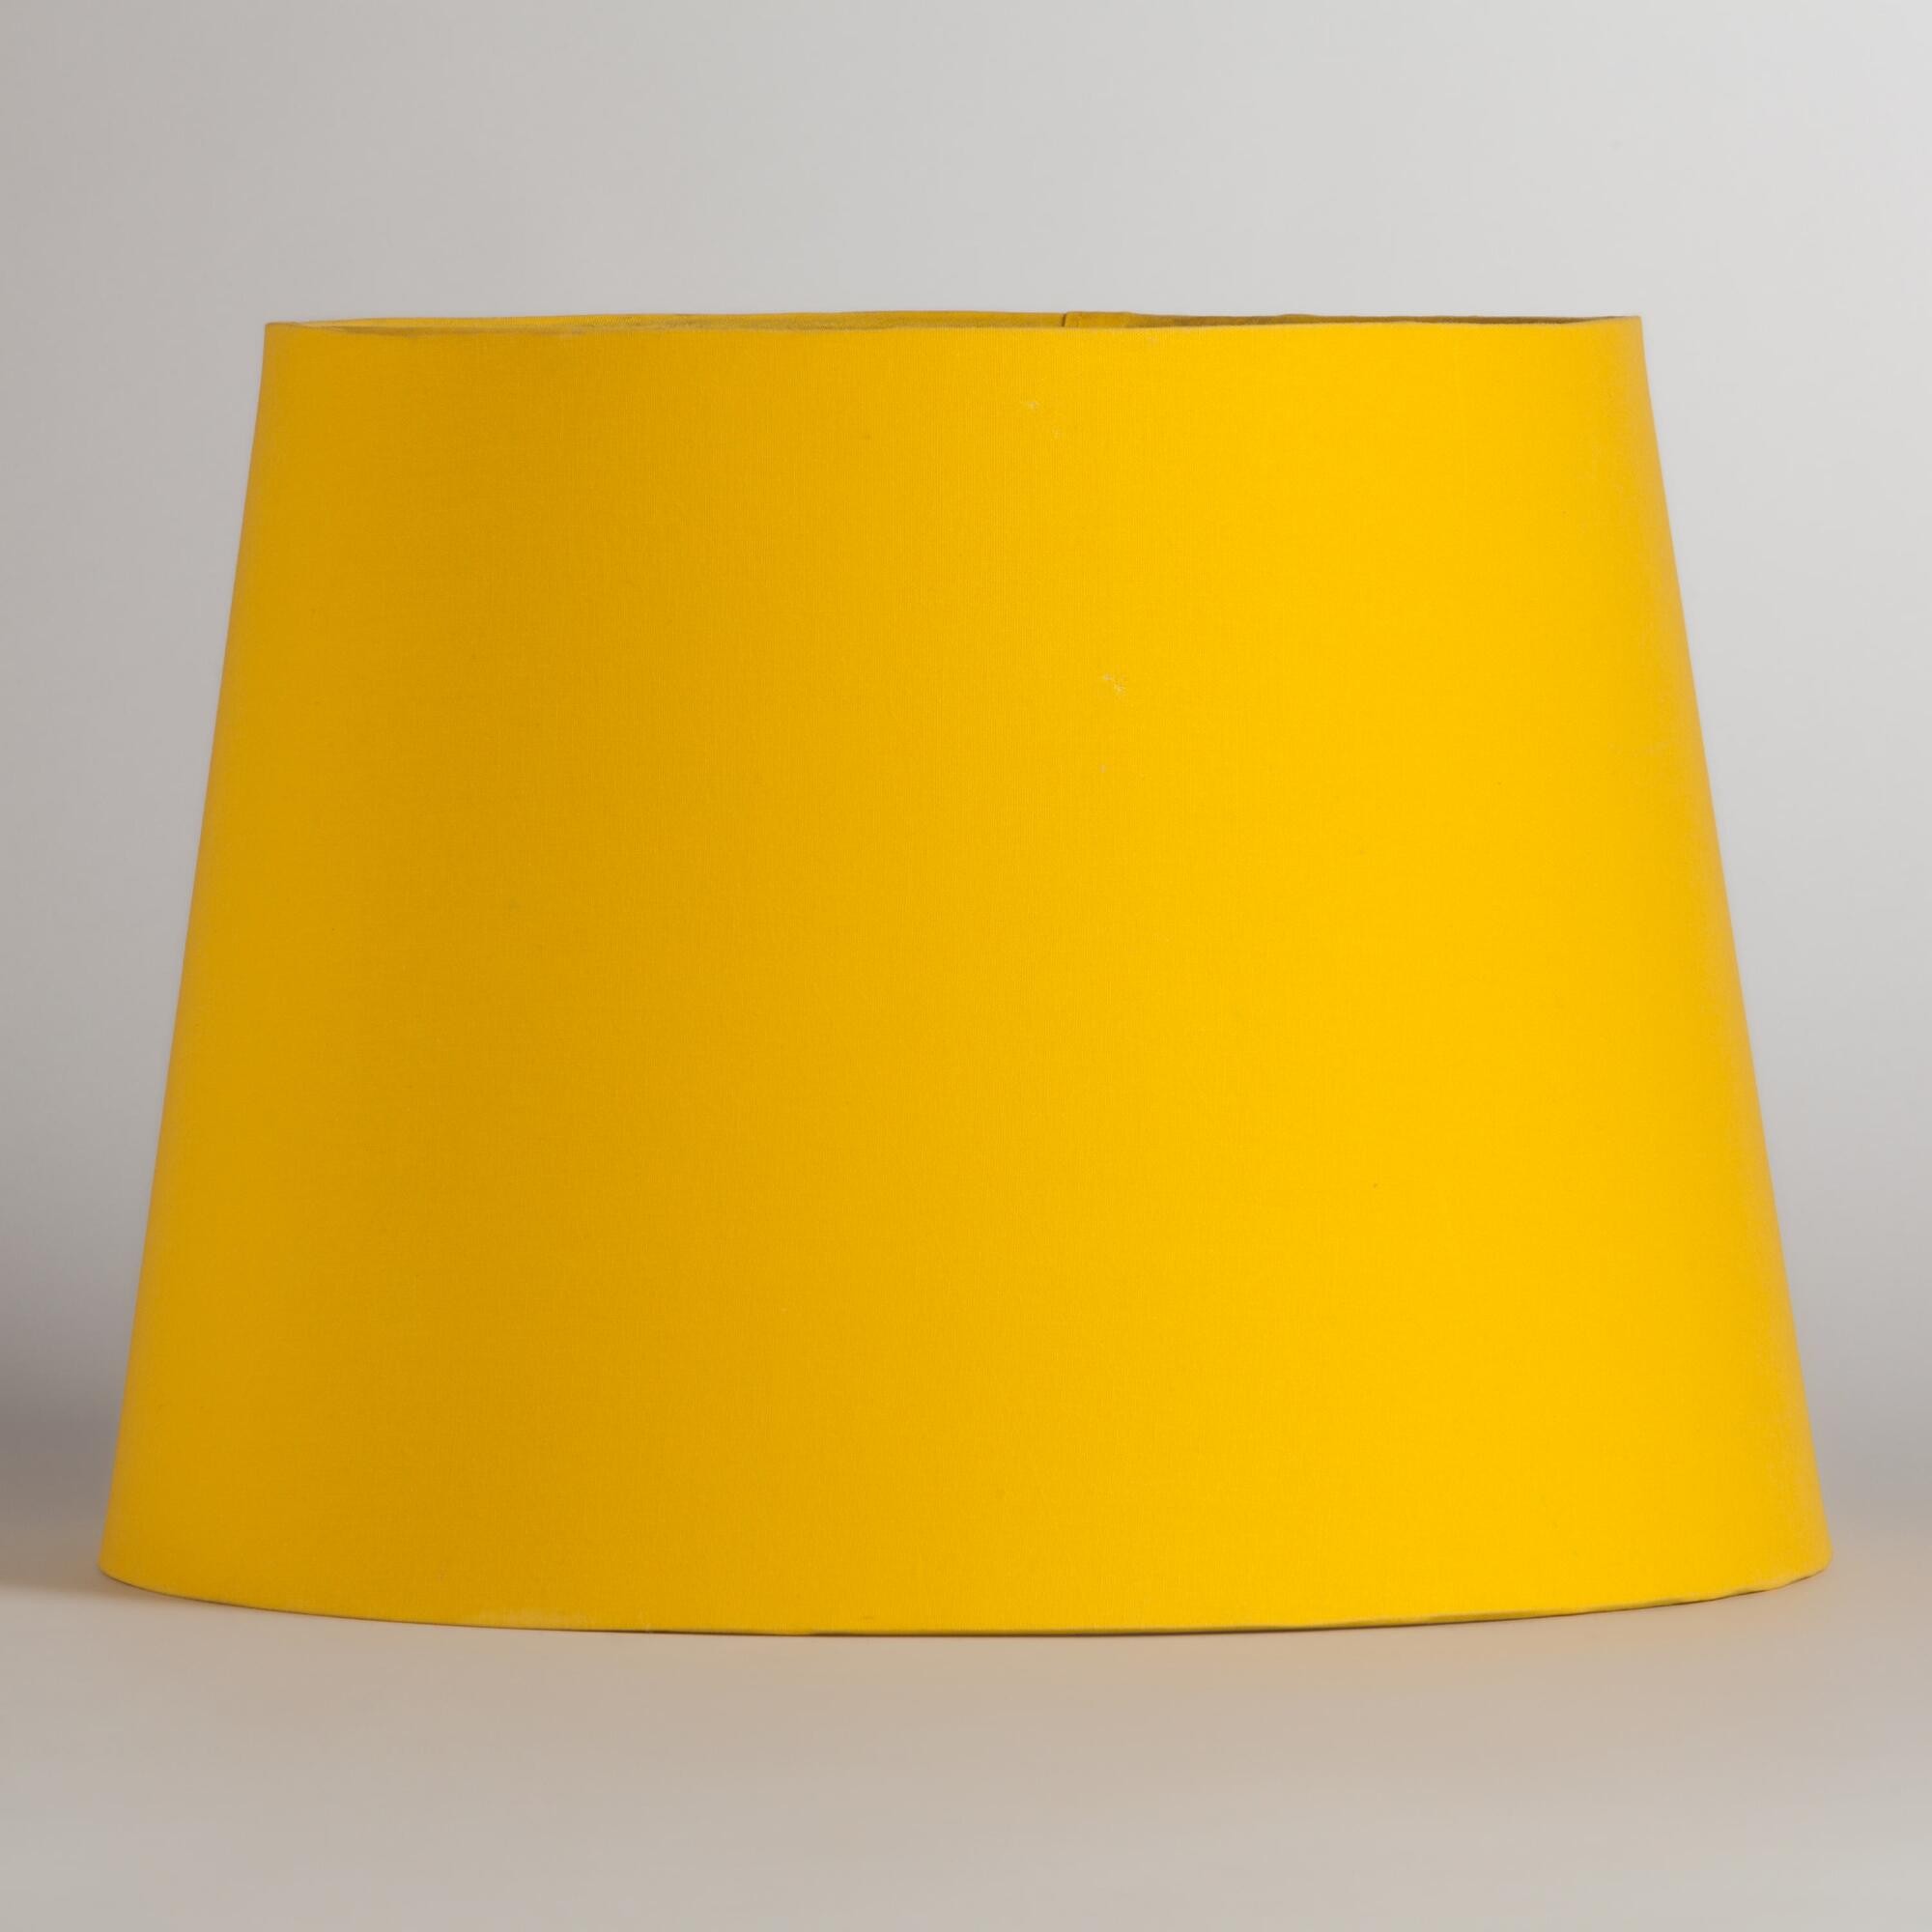 Outdoor Lighting Stores picture on yellow  silver embossed table lamp shade with Outdoor Lighting Stores, Outdoor Lighting ideas ba48e3bddfd8b7160acdedcad3055780